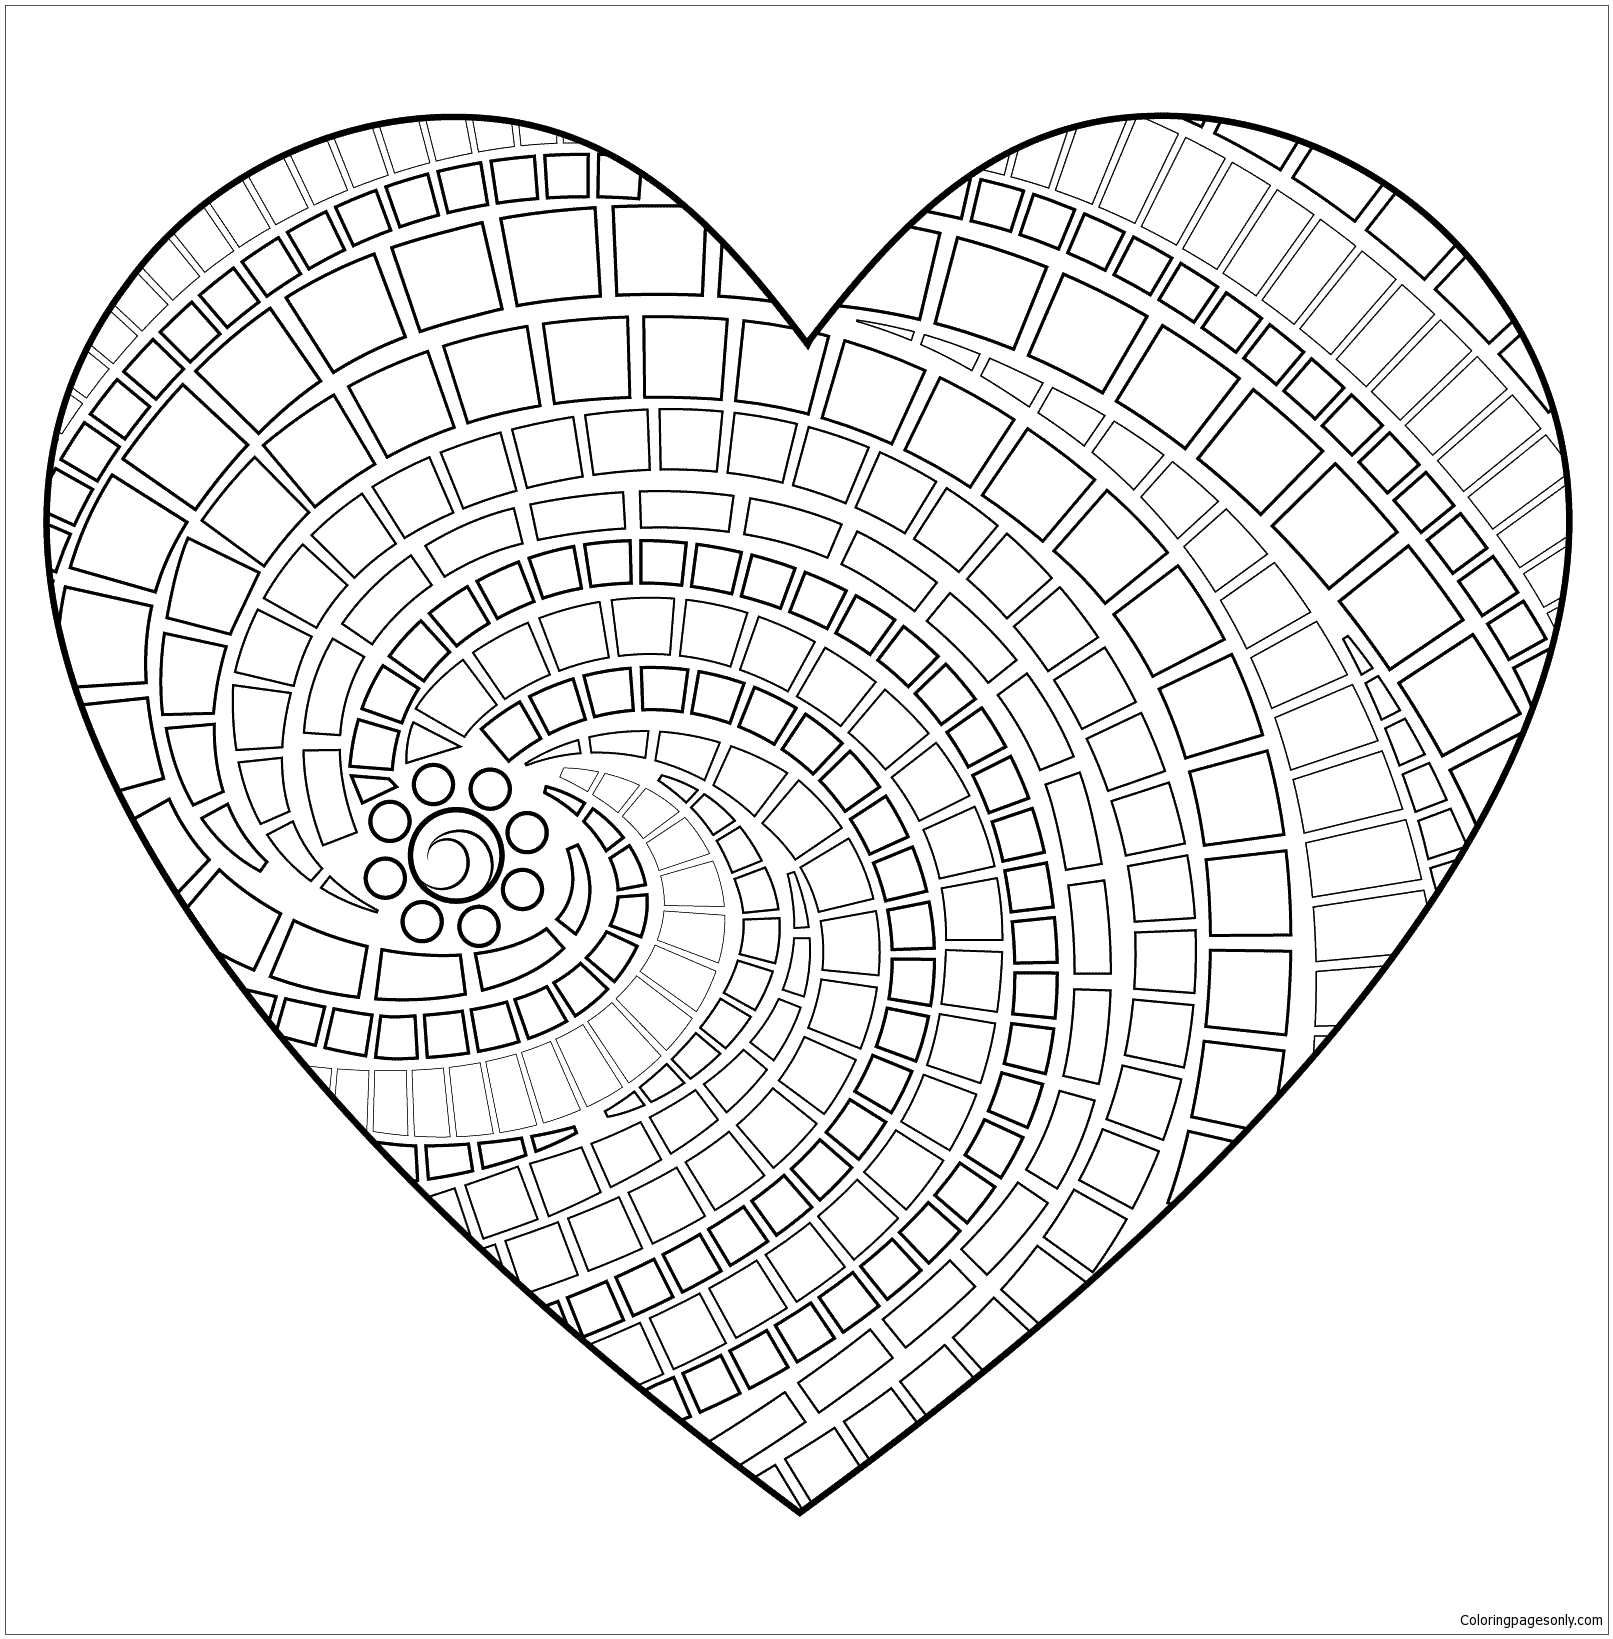 - Heart Mandala Coloring Page - Free Coloring Pages Online